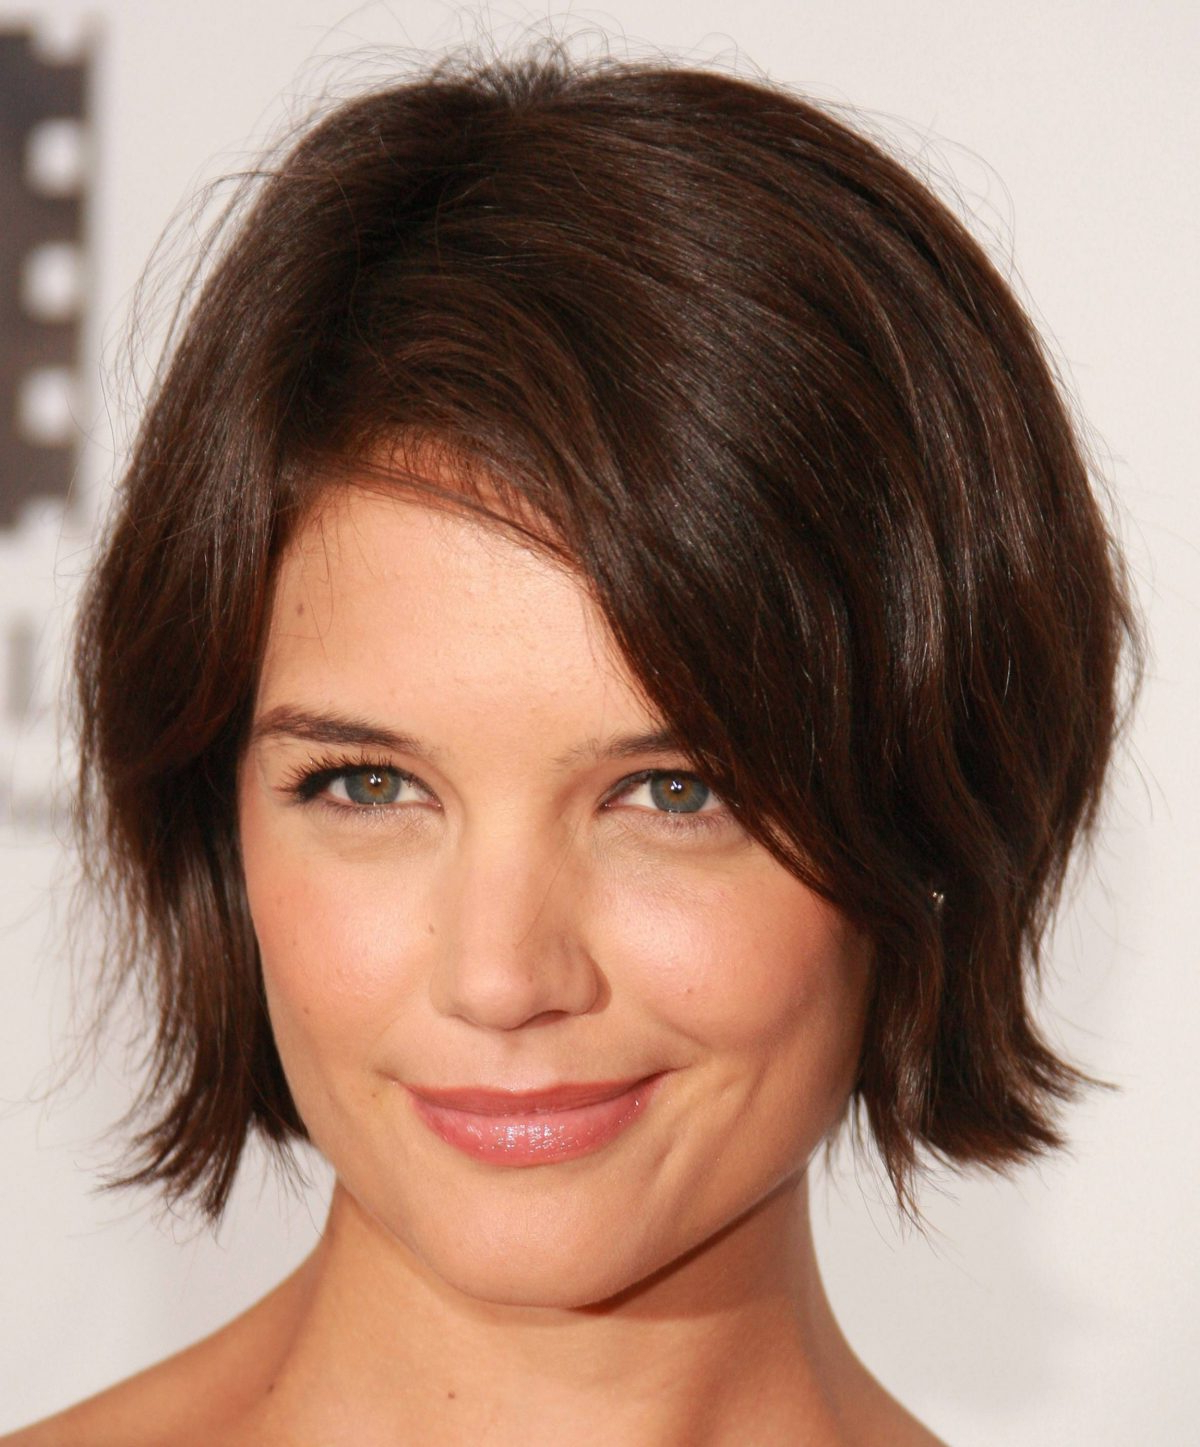 Best Short Hairstyles – Cute Hair Cut Guide For Round Face Shape Inside Edgy Short Haircuts For Round Faces (View 19 of 25)